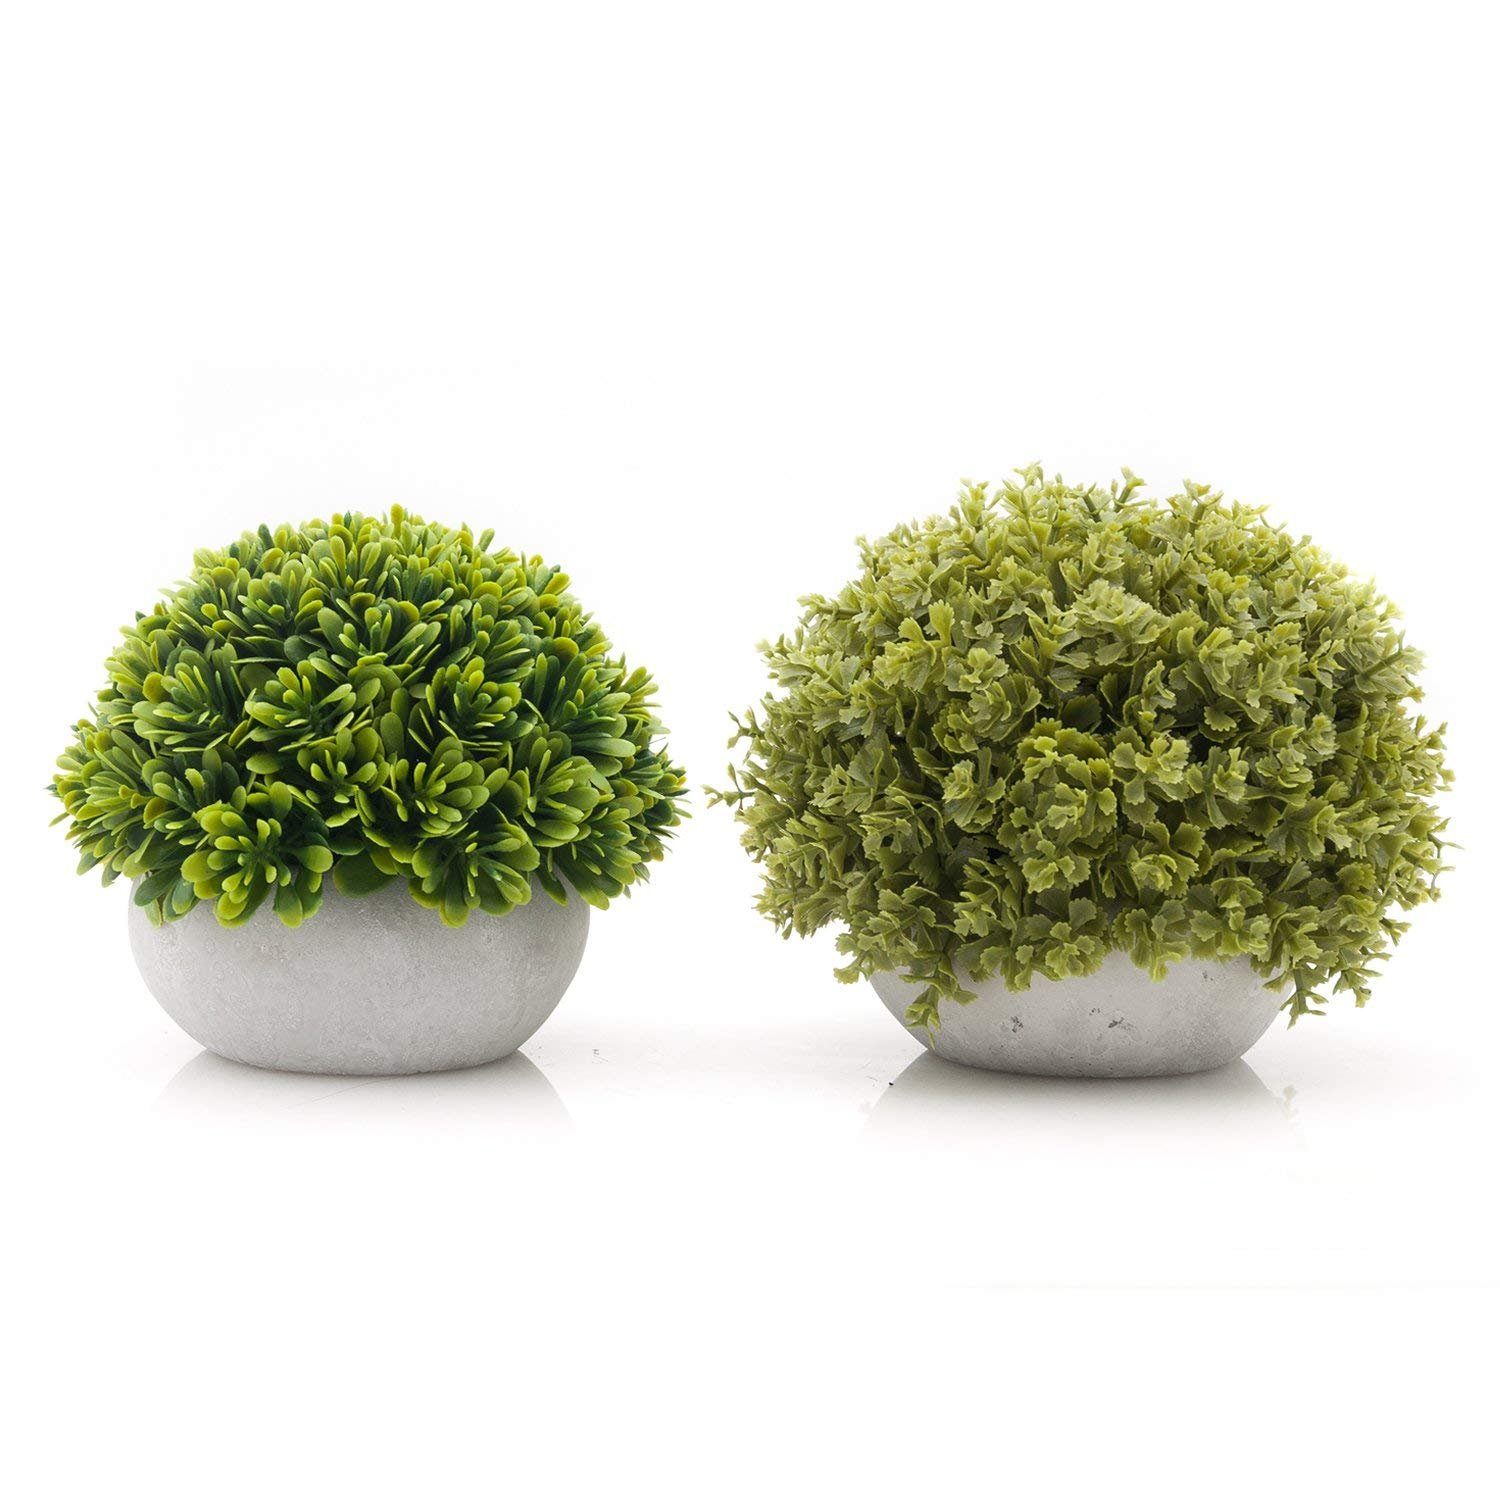 Velener Mini Artificial Green Grass Ball in White Cement Pot for Home Decor(Set of 2)